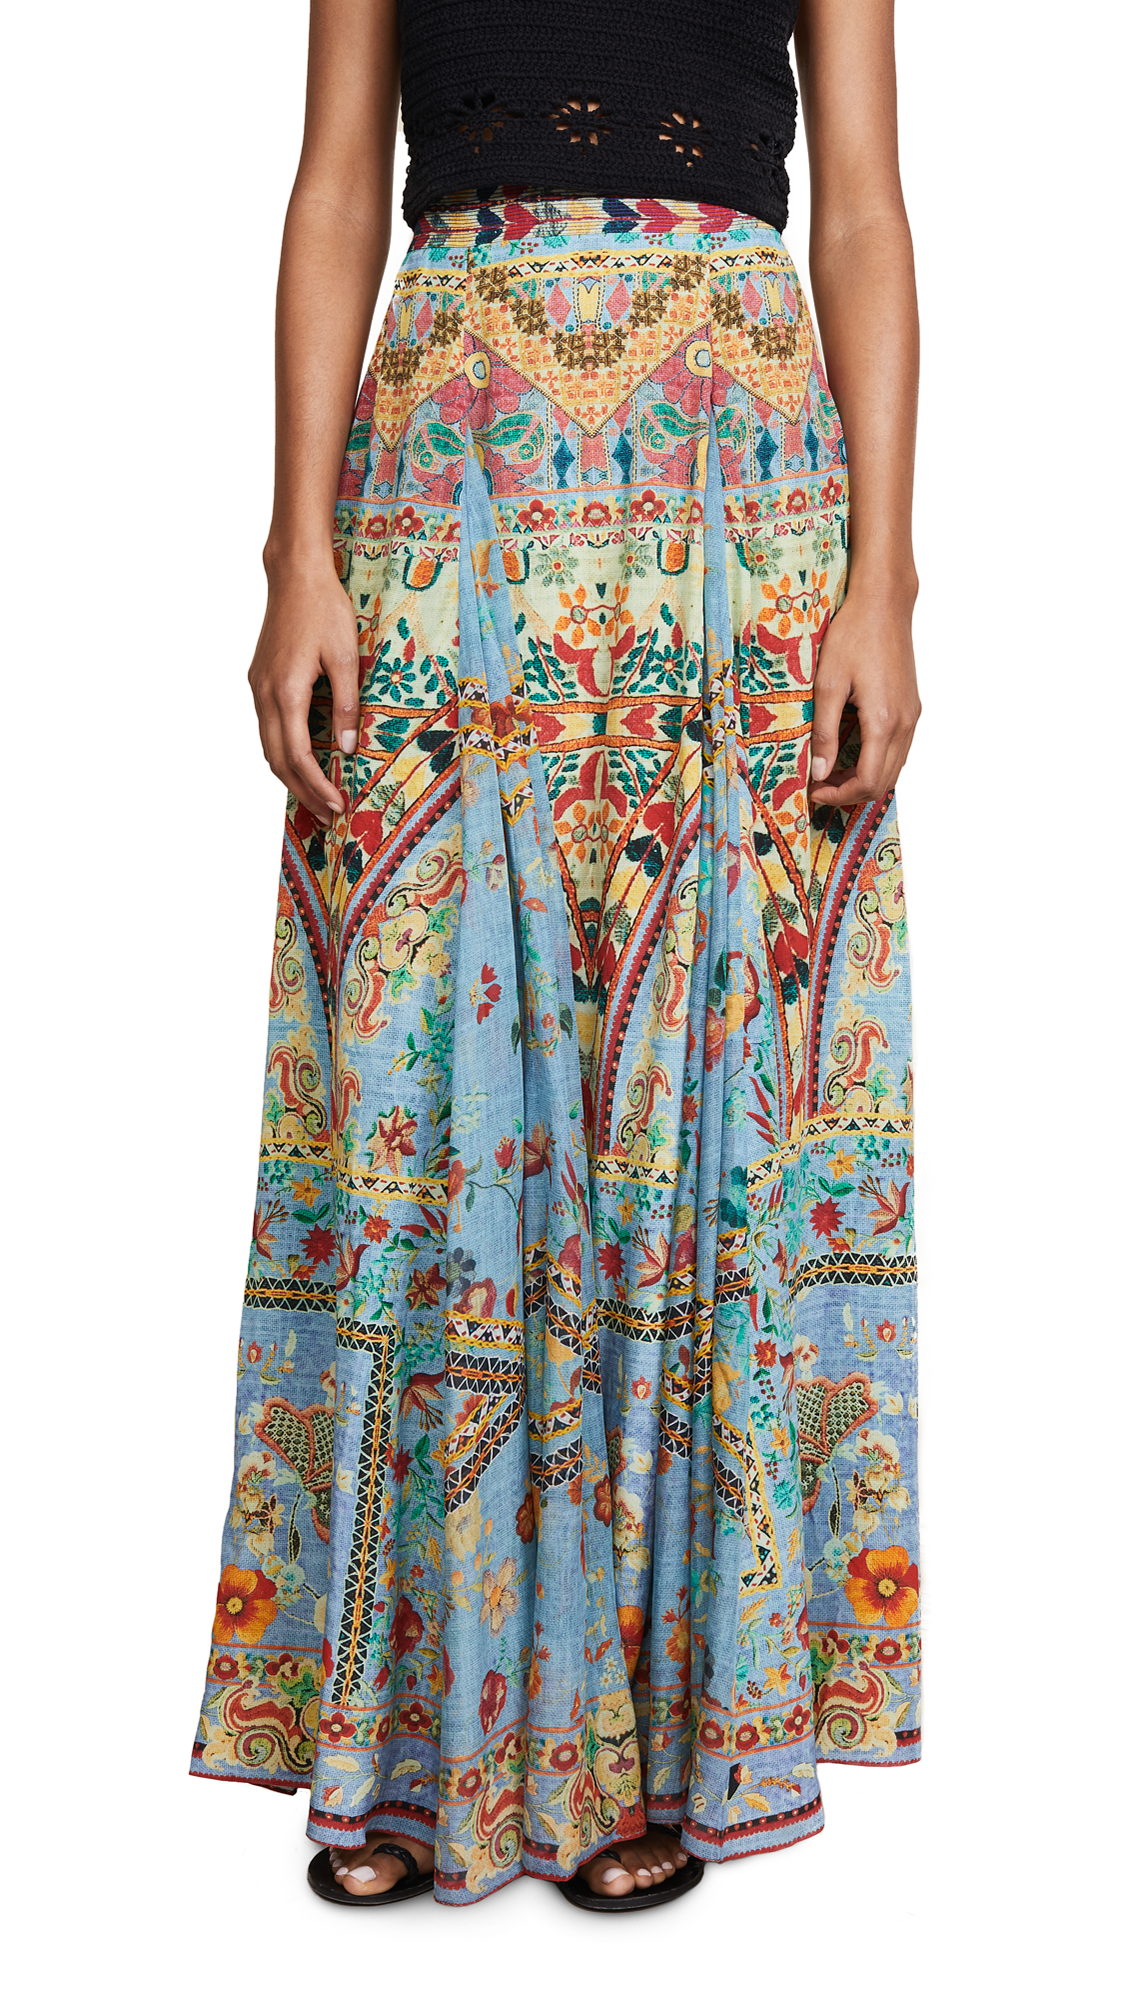 Hemant and Nandita Clara Long Skirt In Light Blue